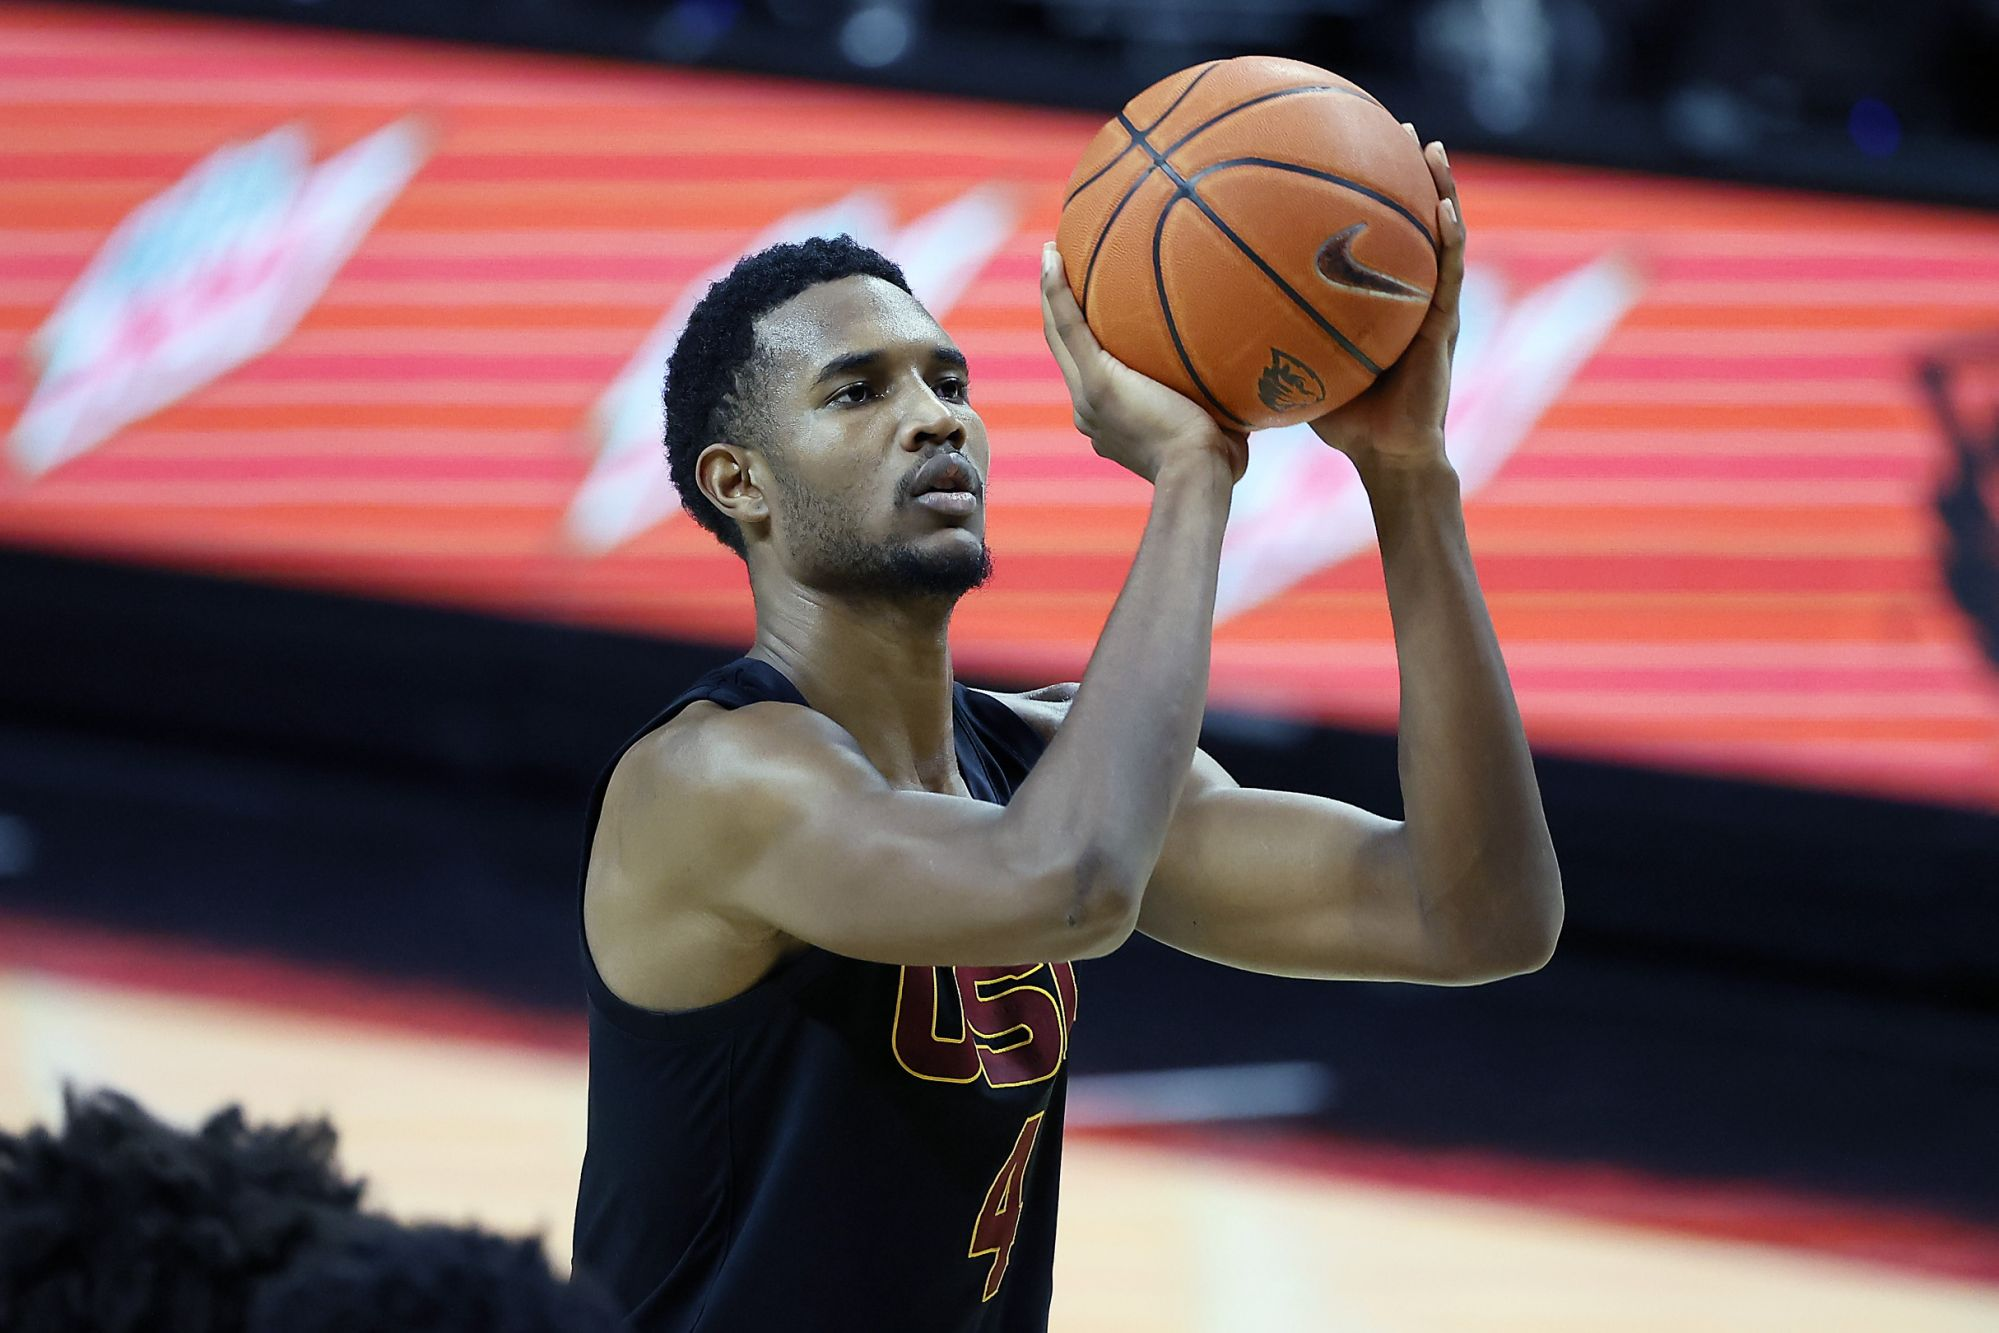 CORVALLIS, OREGON - JANUARY 19: Evan Mobley #4 of the USC Trojans shoots a free throw during the second half against the Oregon State Beavers at Gill Coliseum on January 19, 2021 in Corvallis, Oregon. (Photo by Soobum Im/Getty Images)